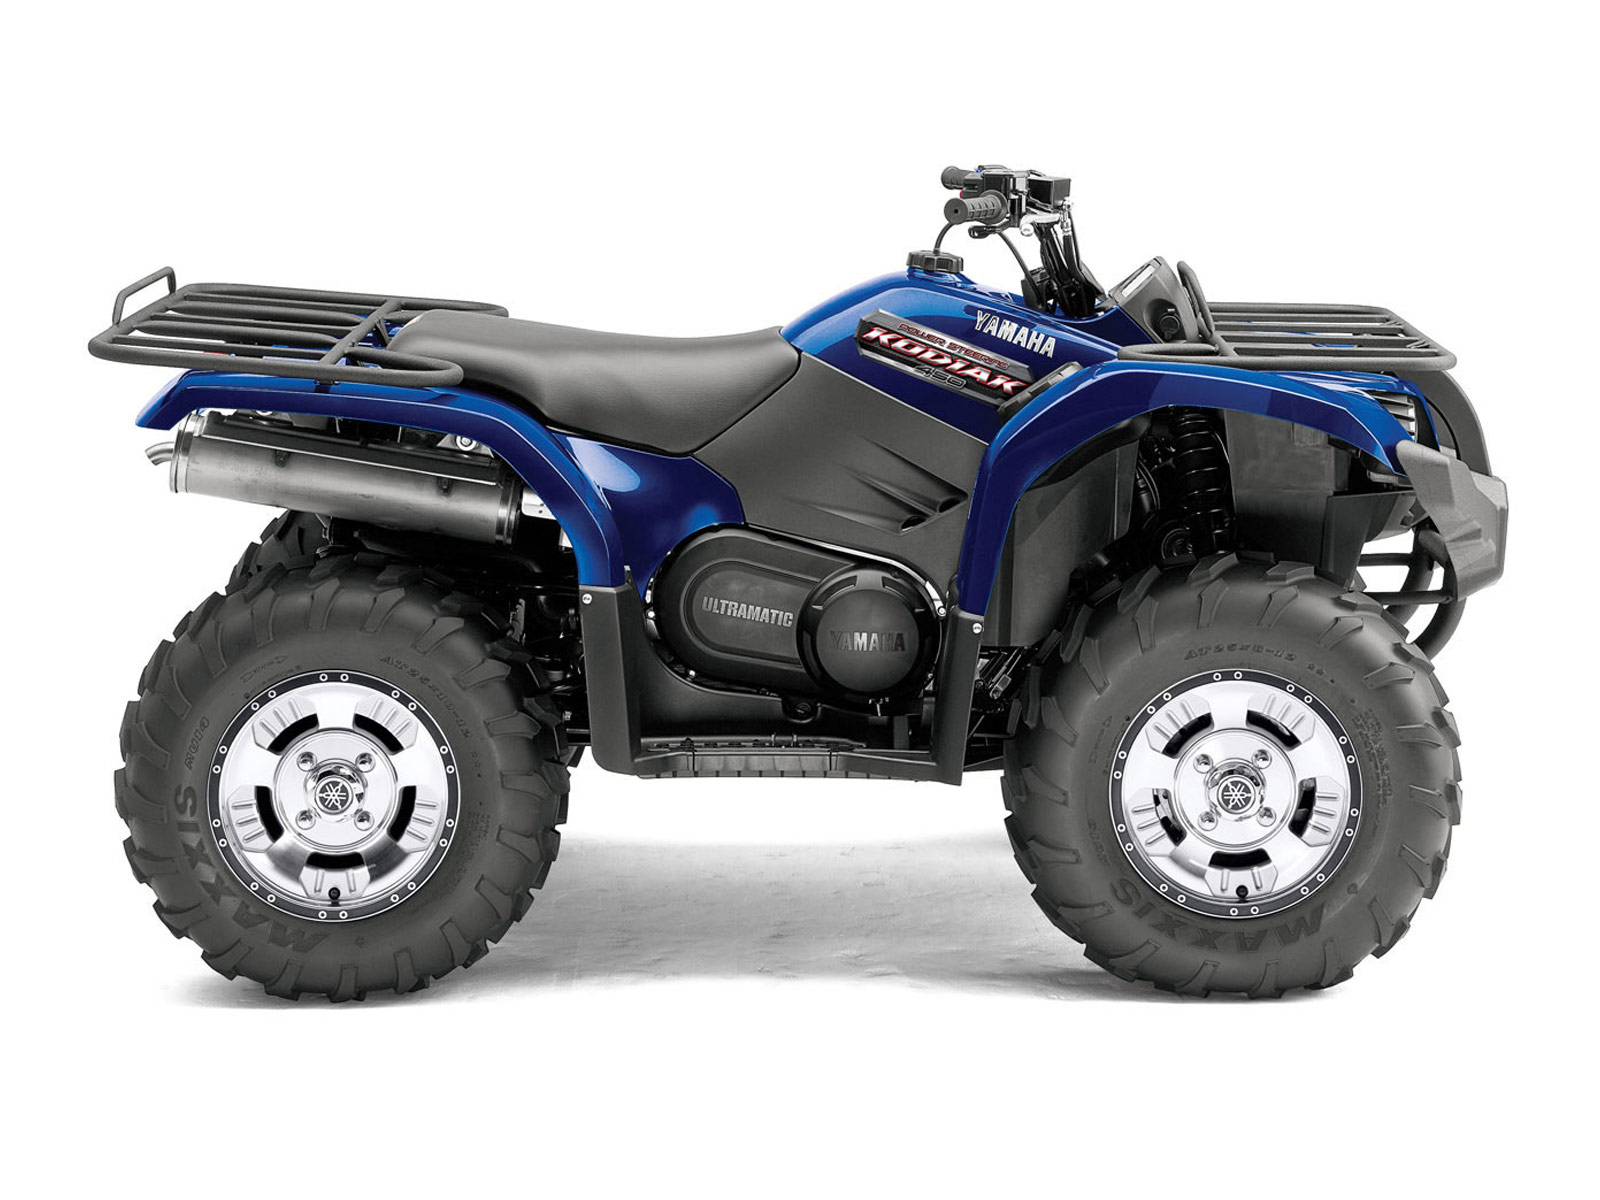 Showthread further Arctic Cat Wildcat Sport besides 2014 Jeep Srt With Whipple Supercharger additionally 2013 Honda Foreman 500 4x4 Es 1 3 moreover Kawasaki Bayou 220 Wiring Diagram. on arctic cat 300 2wd